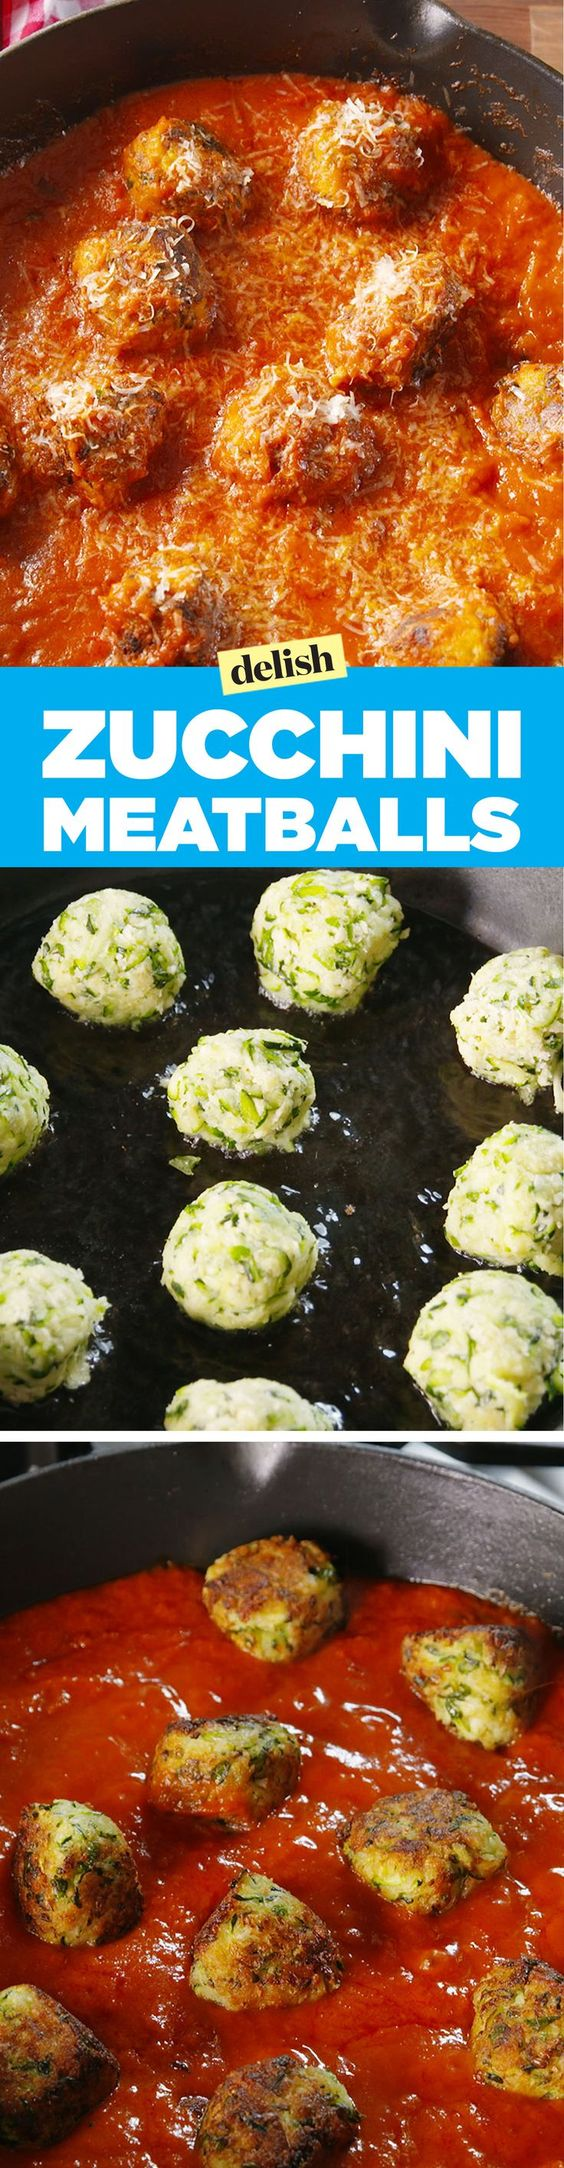 Zucchini meatballs | What an awesome meat substitute for the vegetarian who loves spaghetti and meatballs!